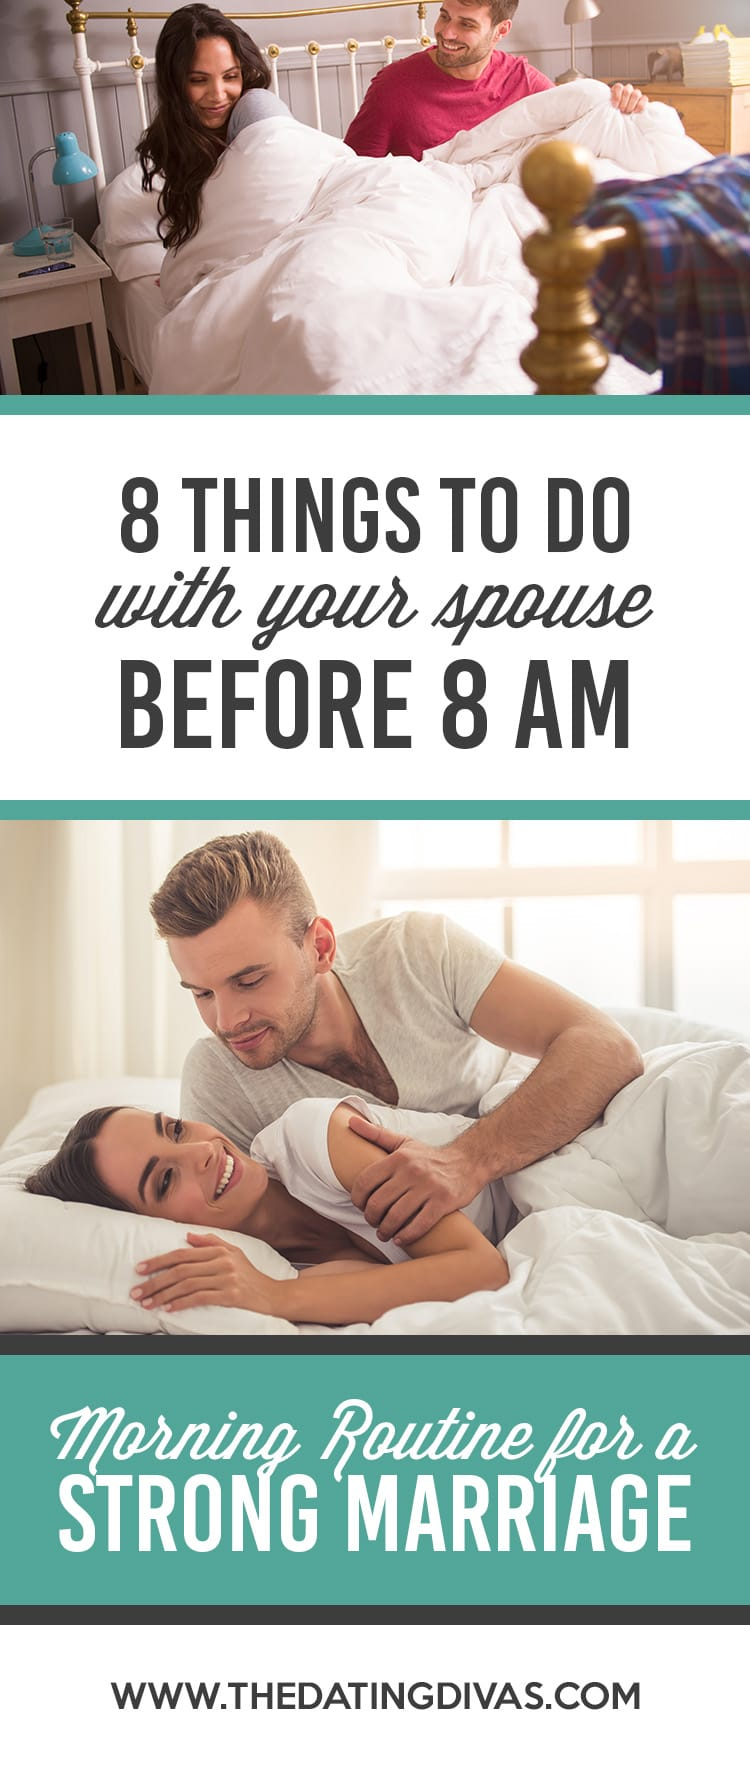 Marriage Morning Routine #marriageadvice #morningroutine